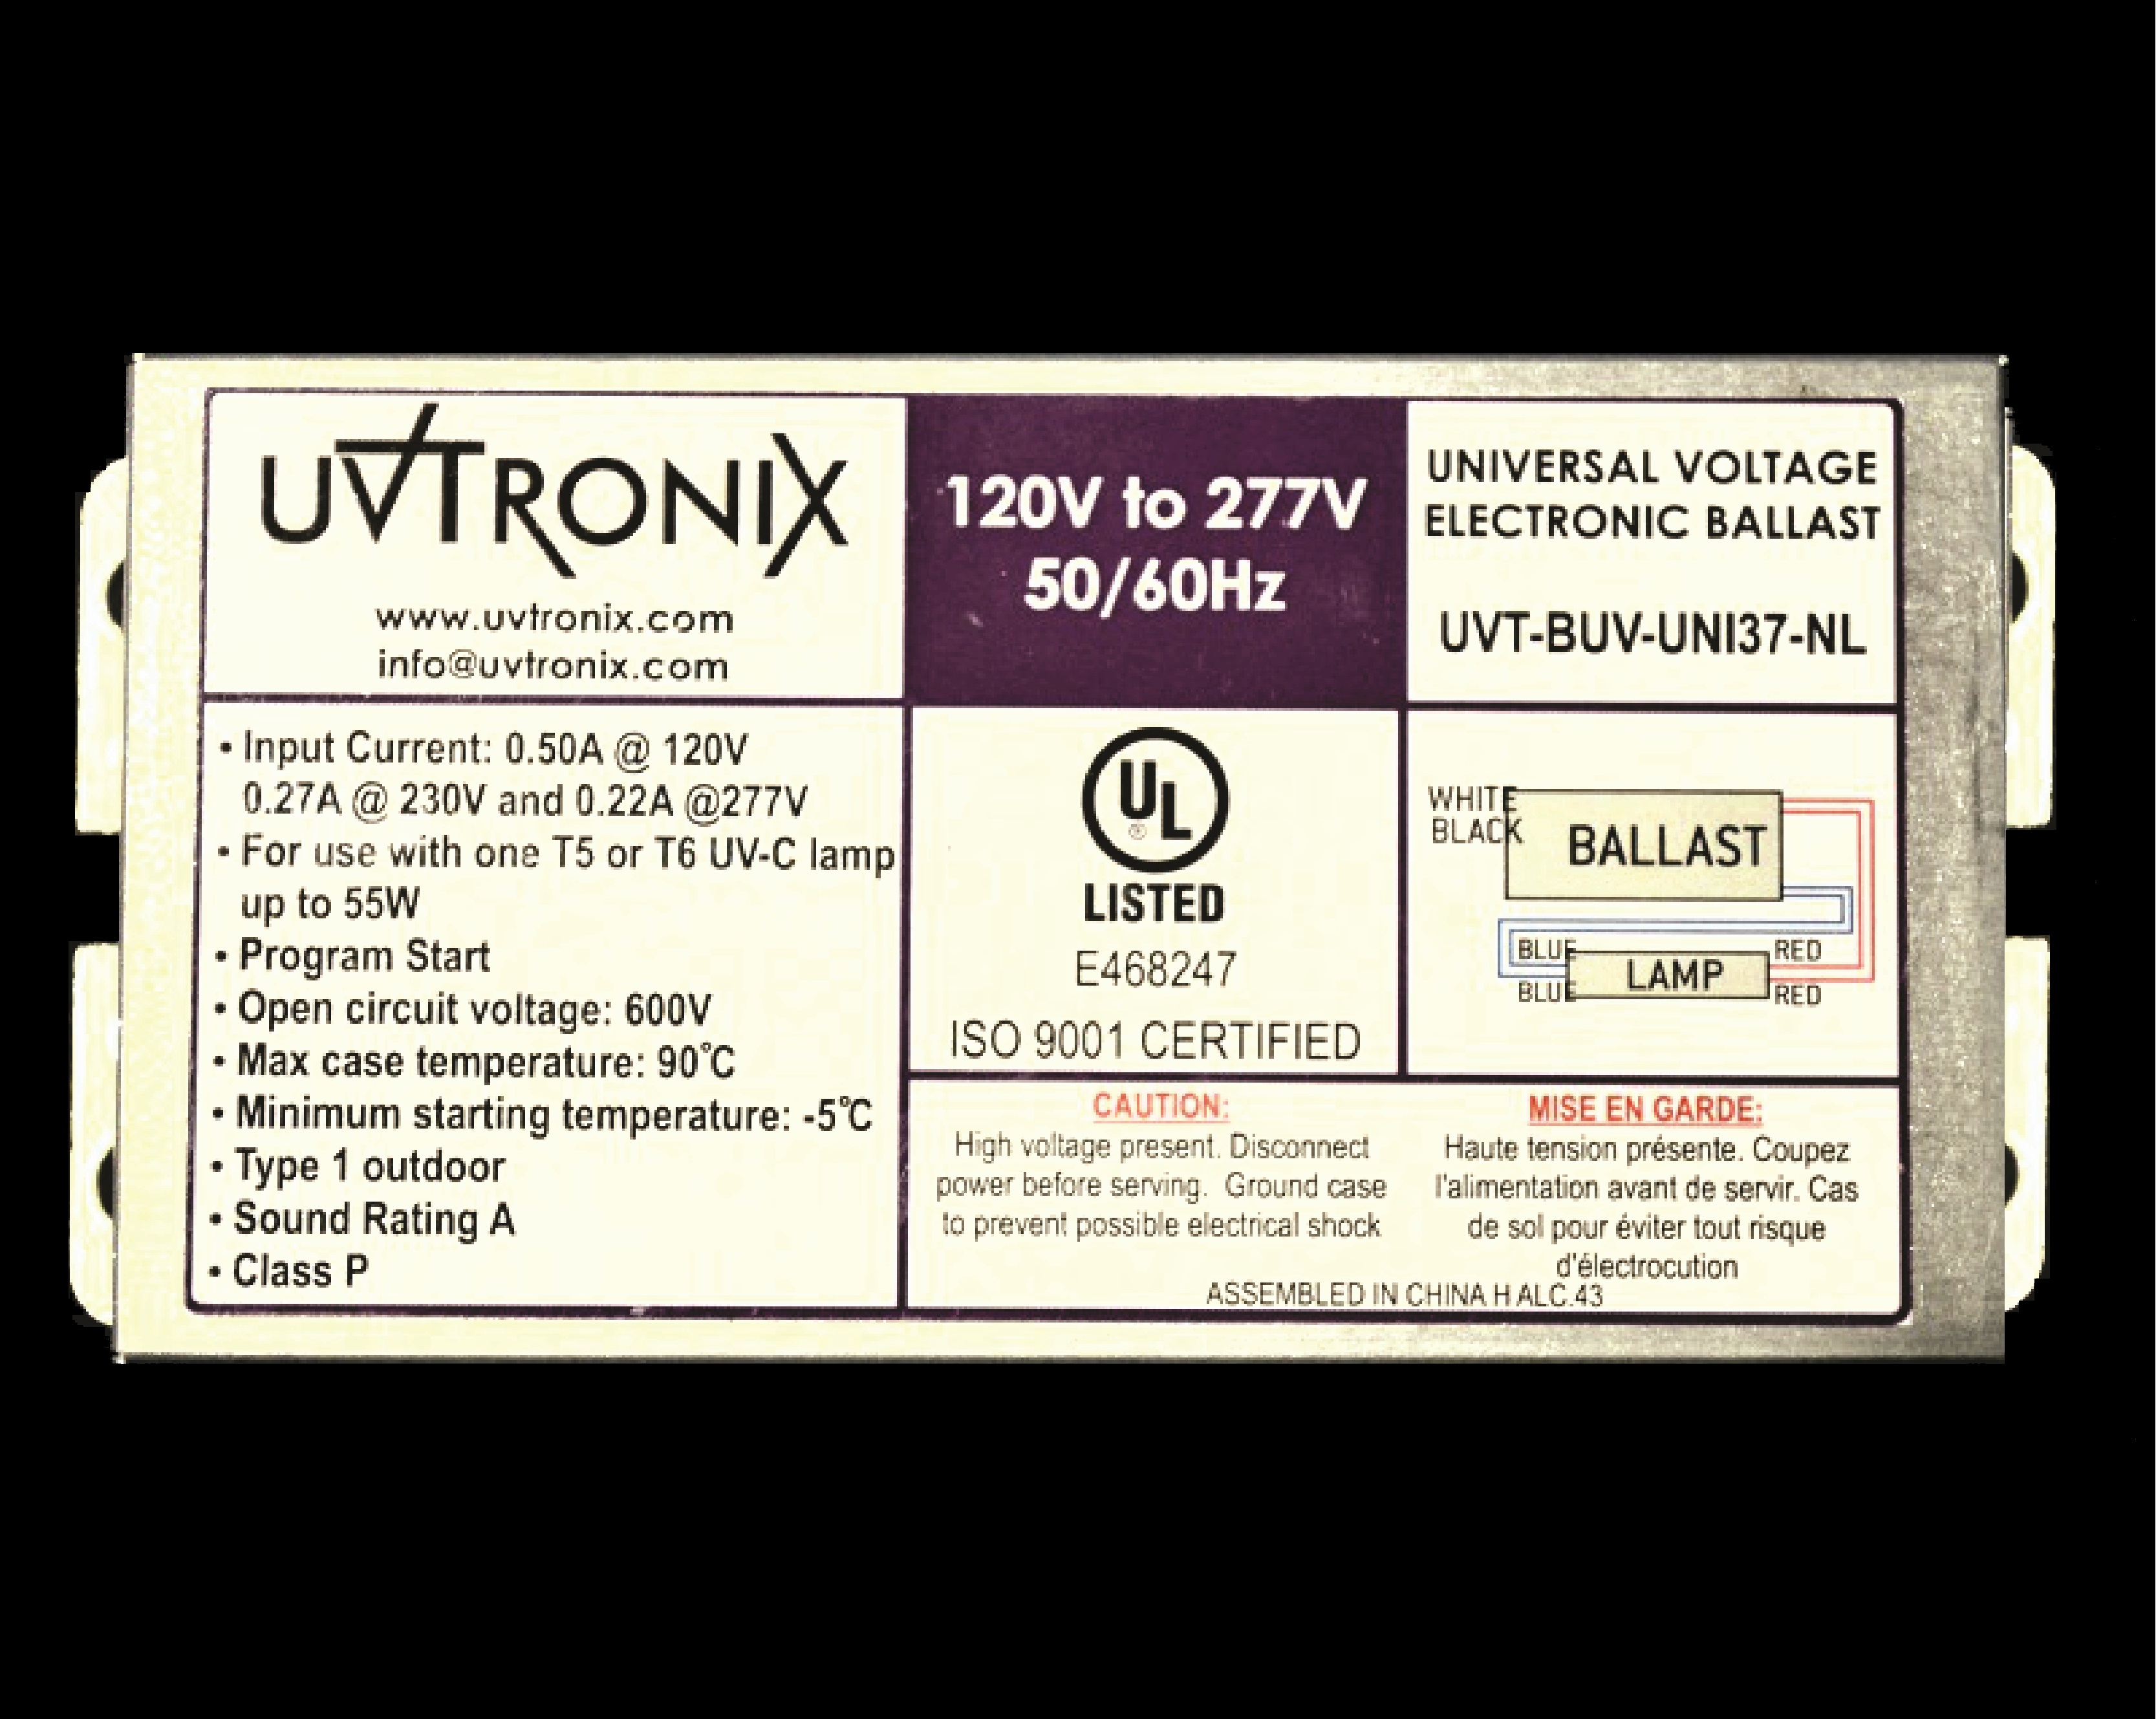 Uvtronix Designs Products Programmed Start Ballast Wiring Diagram Highly Reliable Electronic For Use With A Uv Lamp Up To 55w